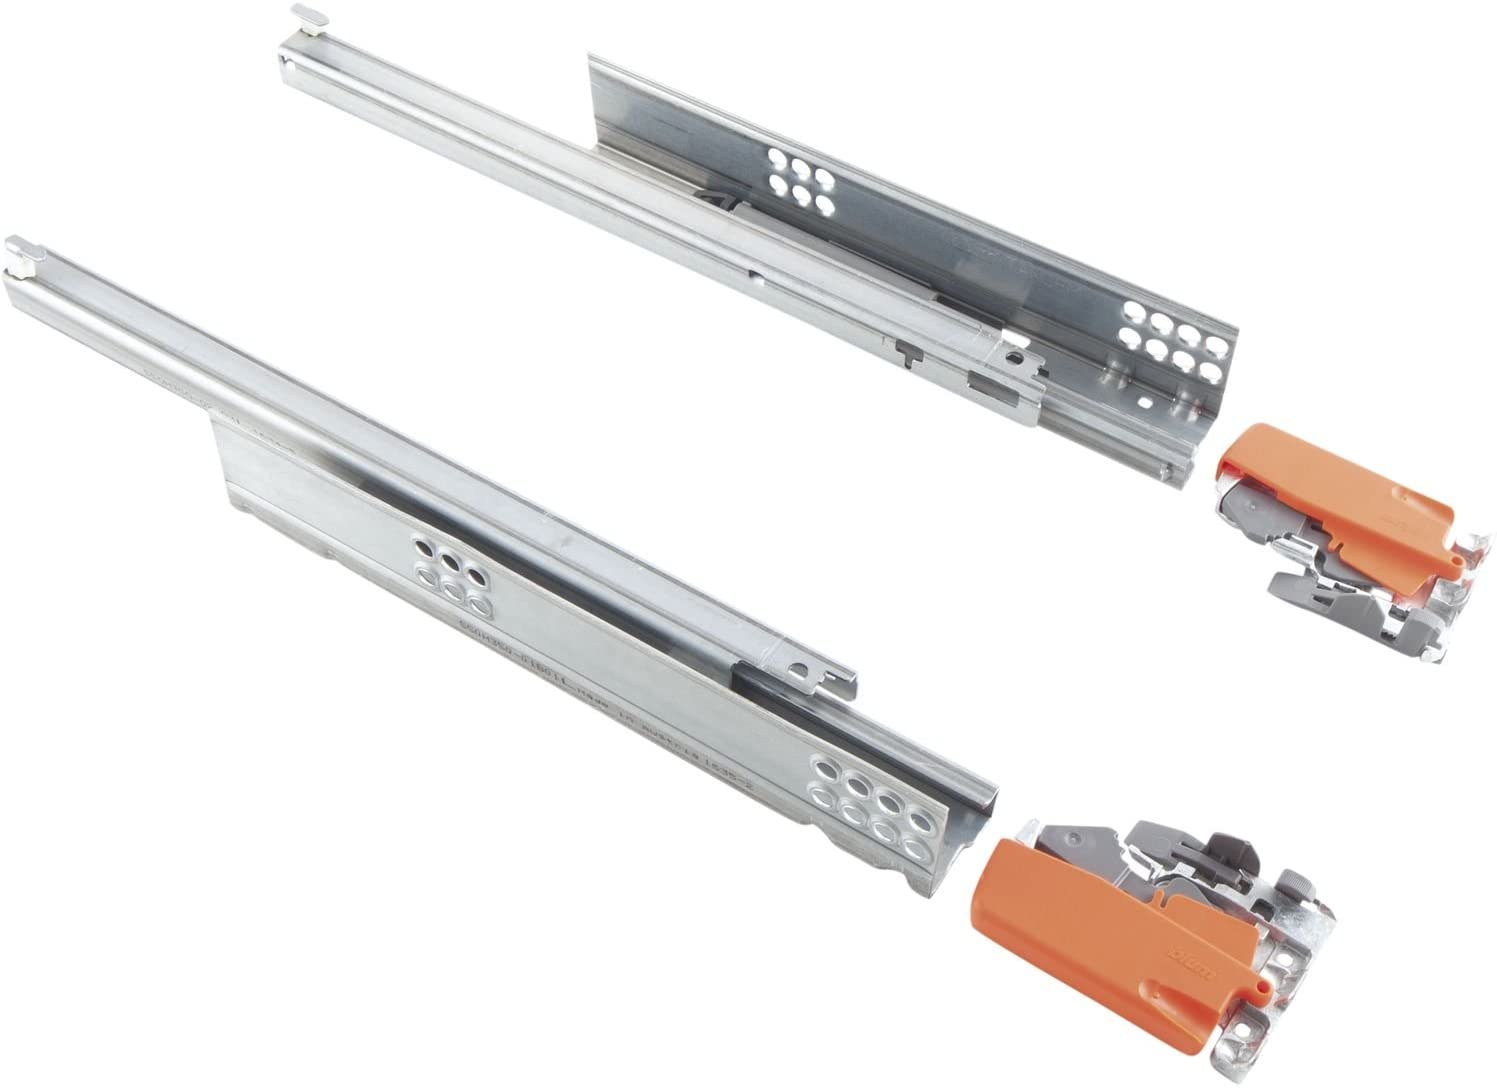 Blum Long Glissiere movento tip on-charge 60 kg sortie totale mm.700